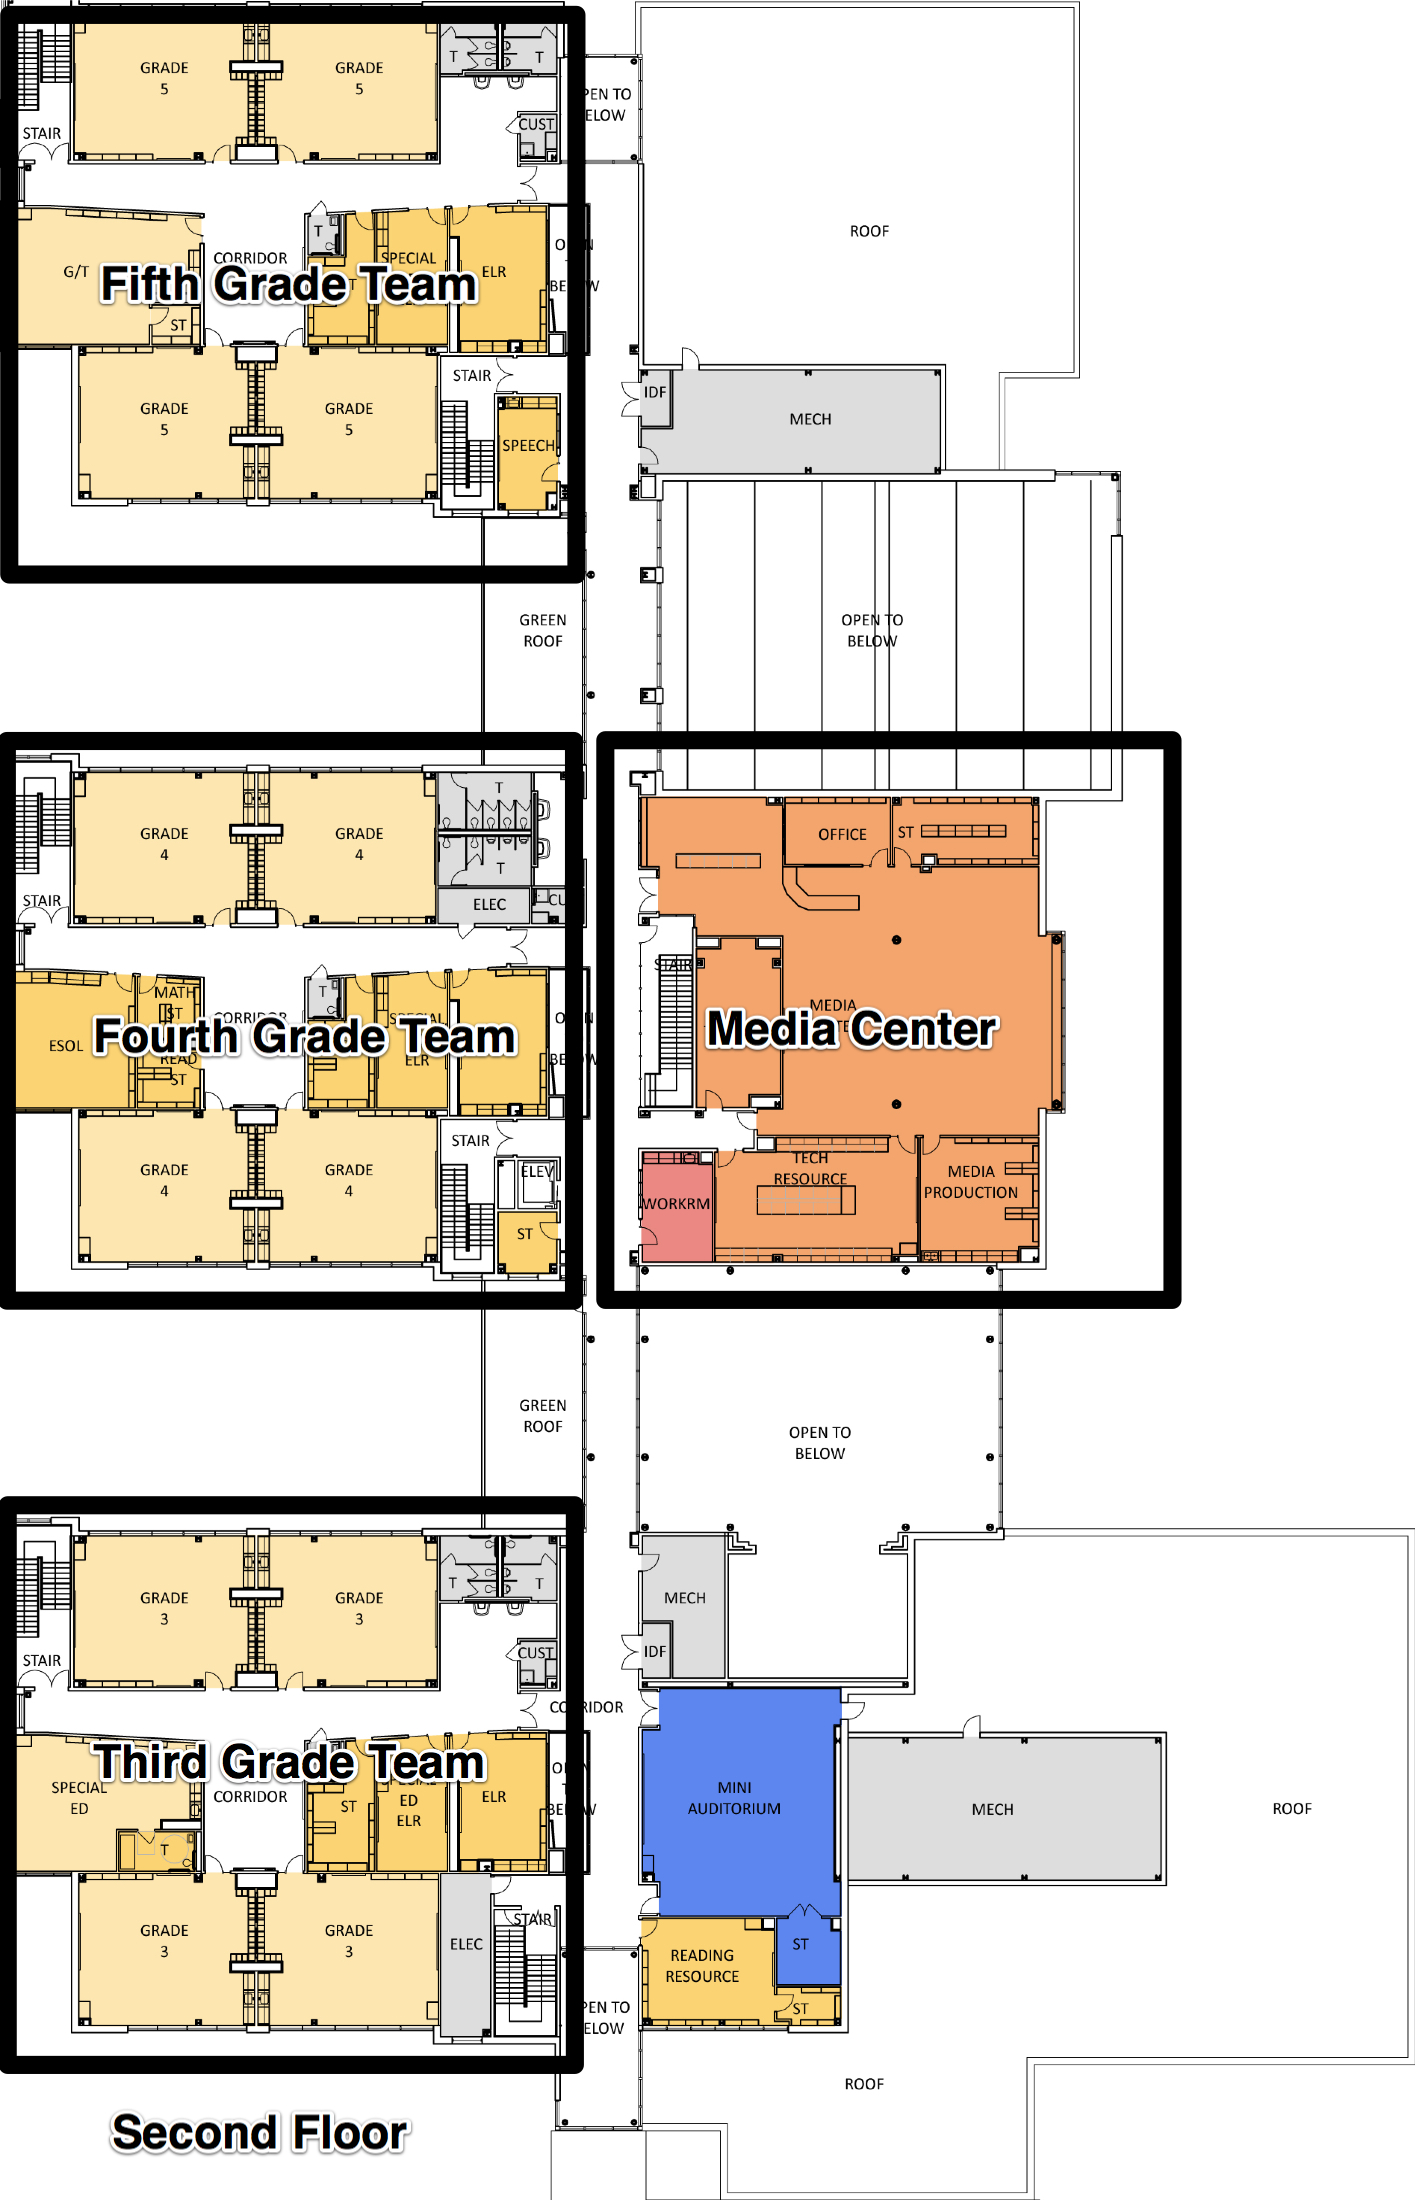 dles second floor map of school